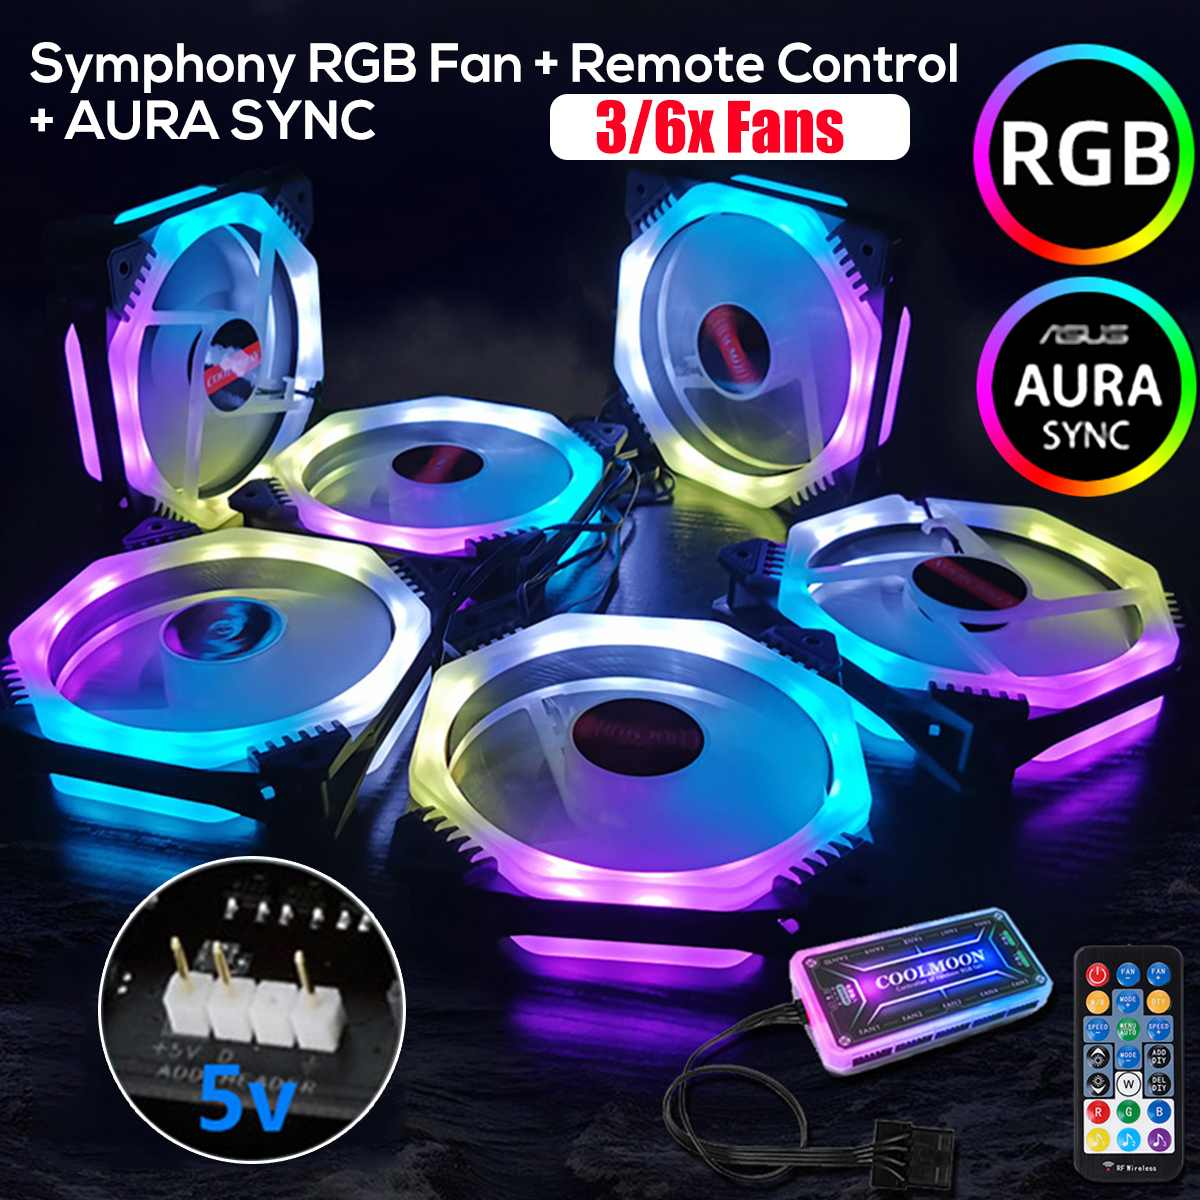 3/6pcs <font><b>120mm</b></font> Cooler <font><b>Fan</b></font> <font><b>Cooling</b></font> Symphony Aura SYNC RGB PC <font><b>Fan</b></font> <font><b>Cooling</b></font> <font><b>Fan</b></font> For Computer <font><b>Silent</b></font> Gaming Case Music Remote Control image